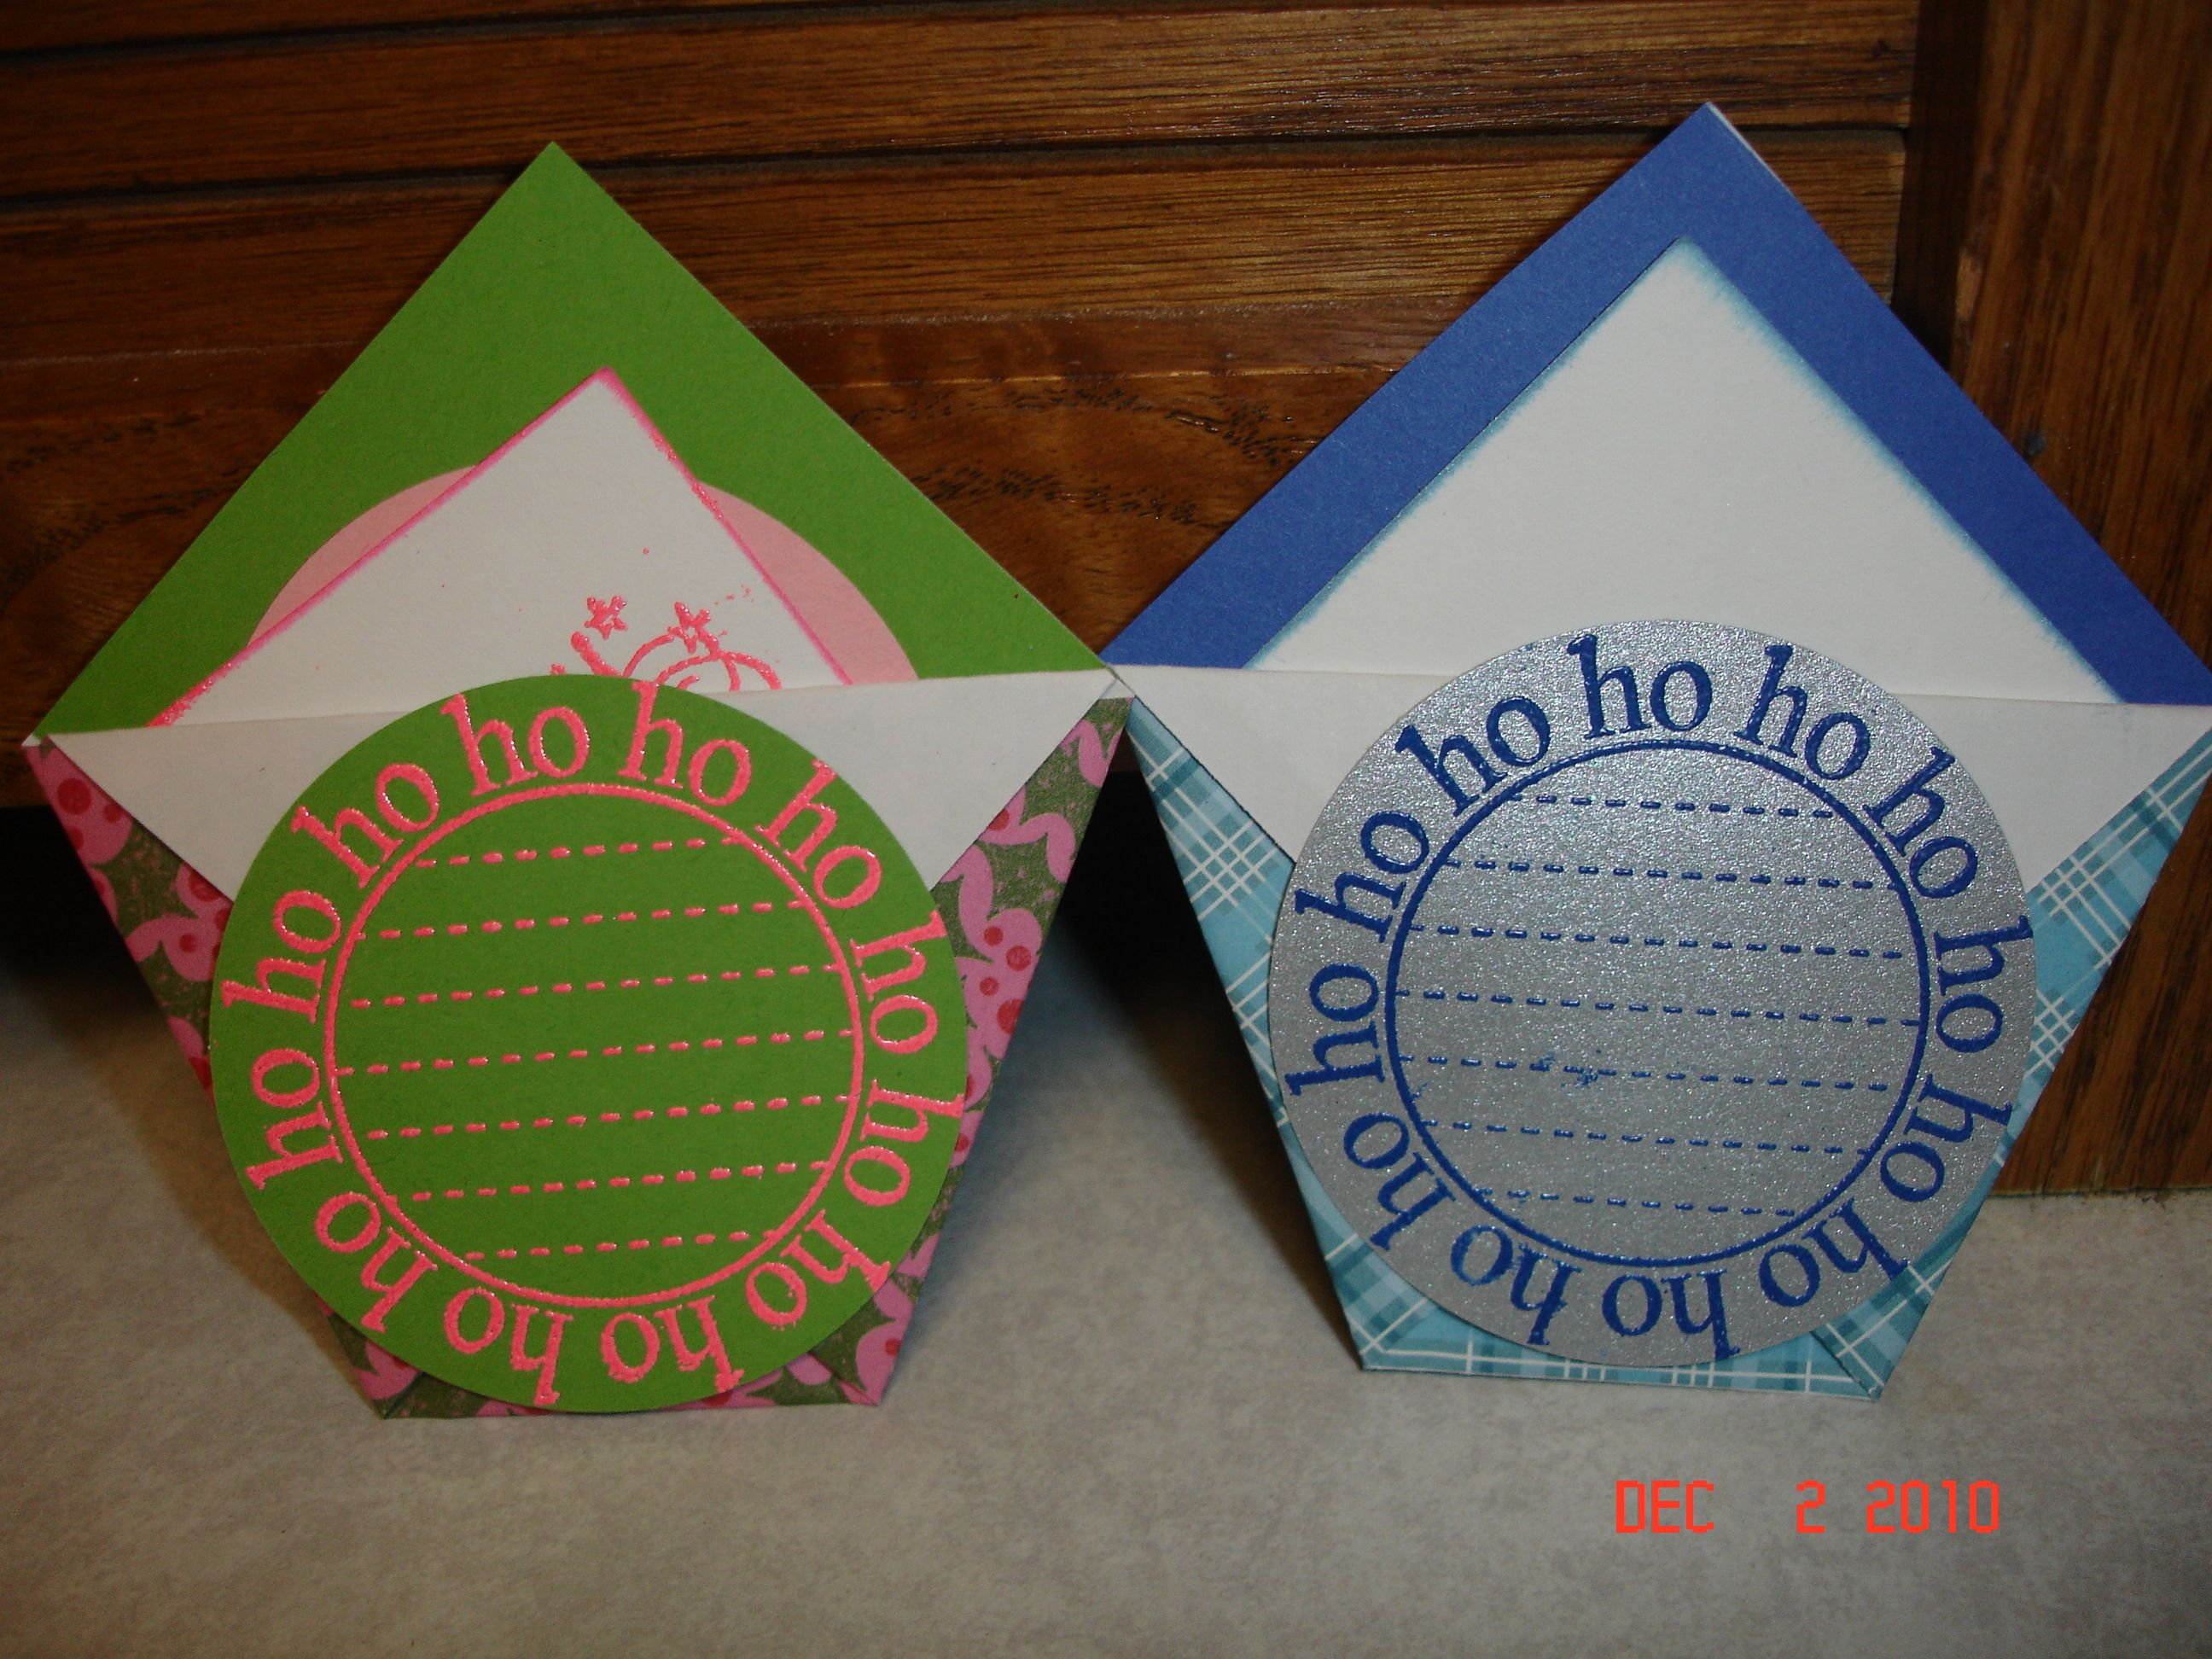 Christmas gift card/money holders | My Creations | Pinterest: pinterest.com/pin/28358672623284120